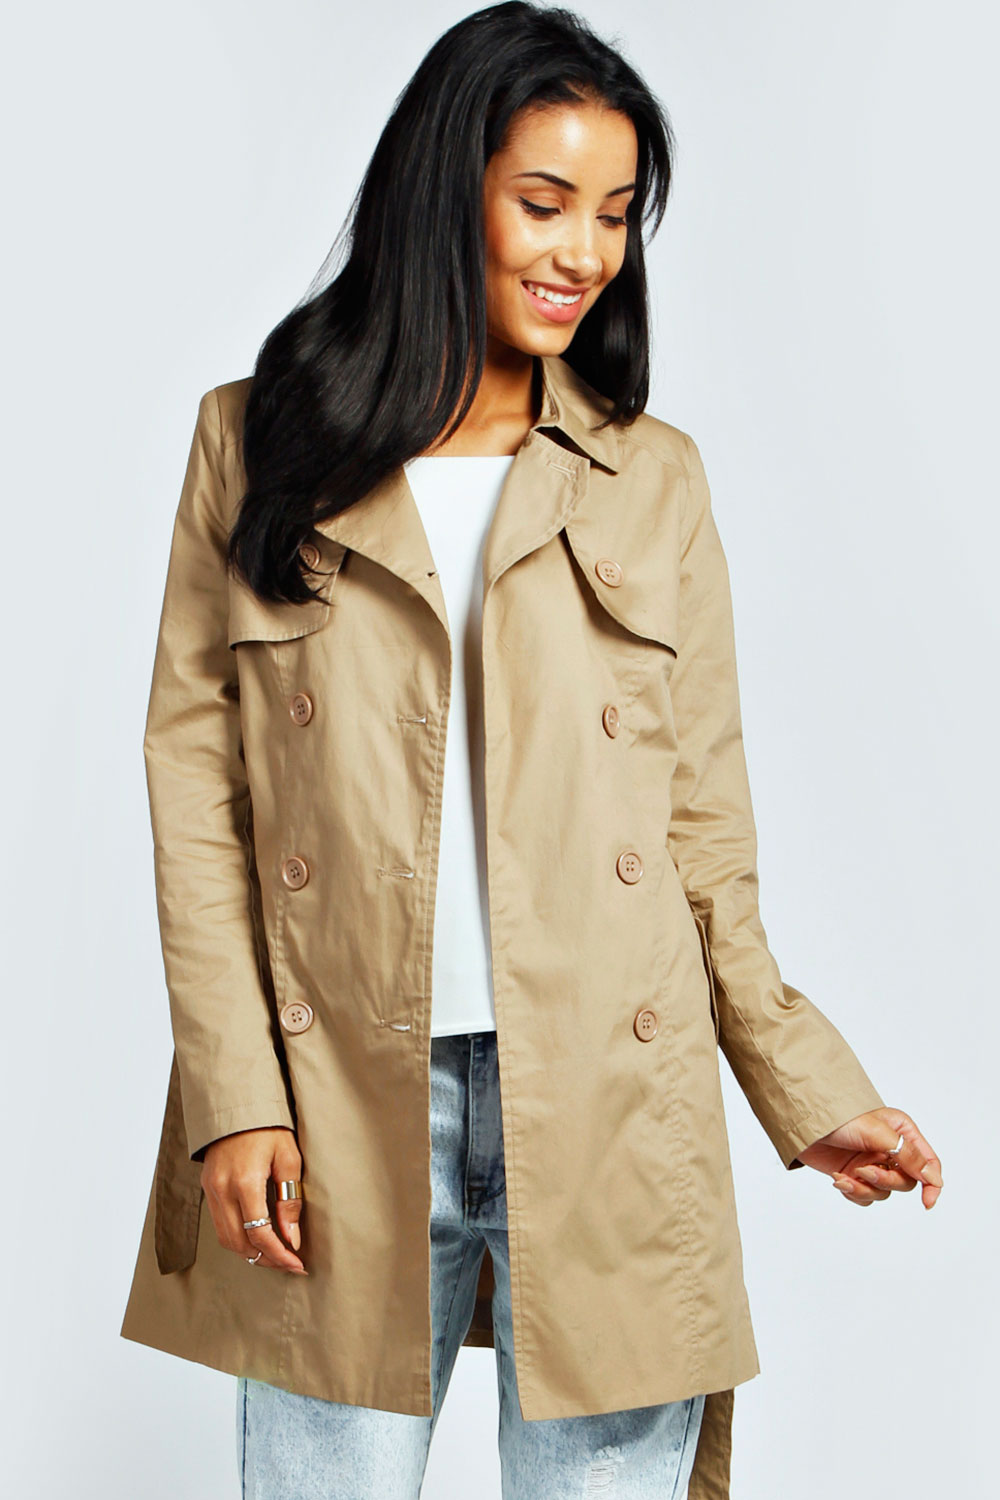 Find a great selection of raincoats for women at venchik.ml Shop by feature, length, and closure from brands like The North Face, Cole Haan, Pendleton & more. Check out our entire collection. Free shipping & returns.